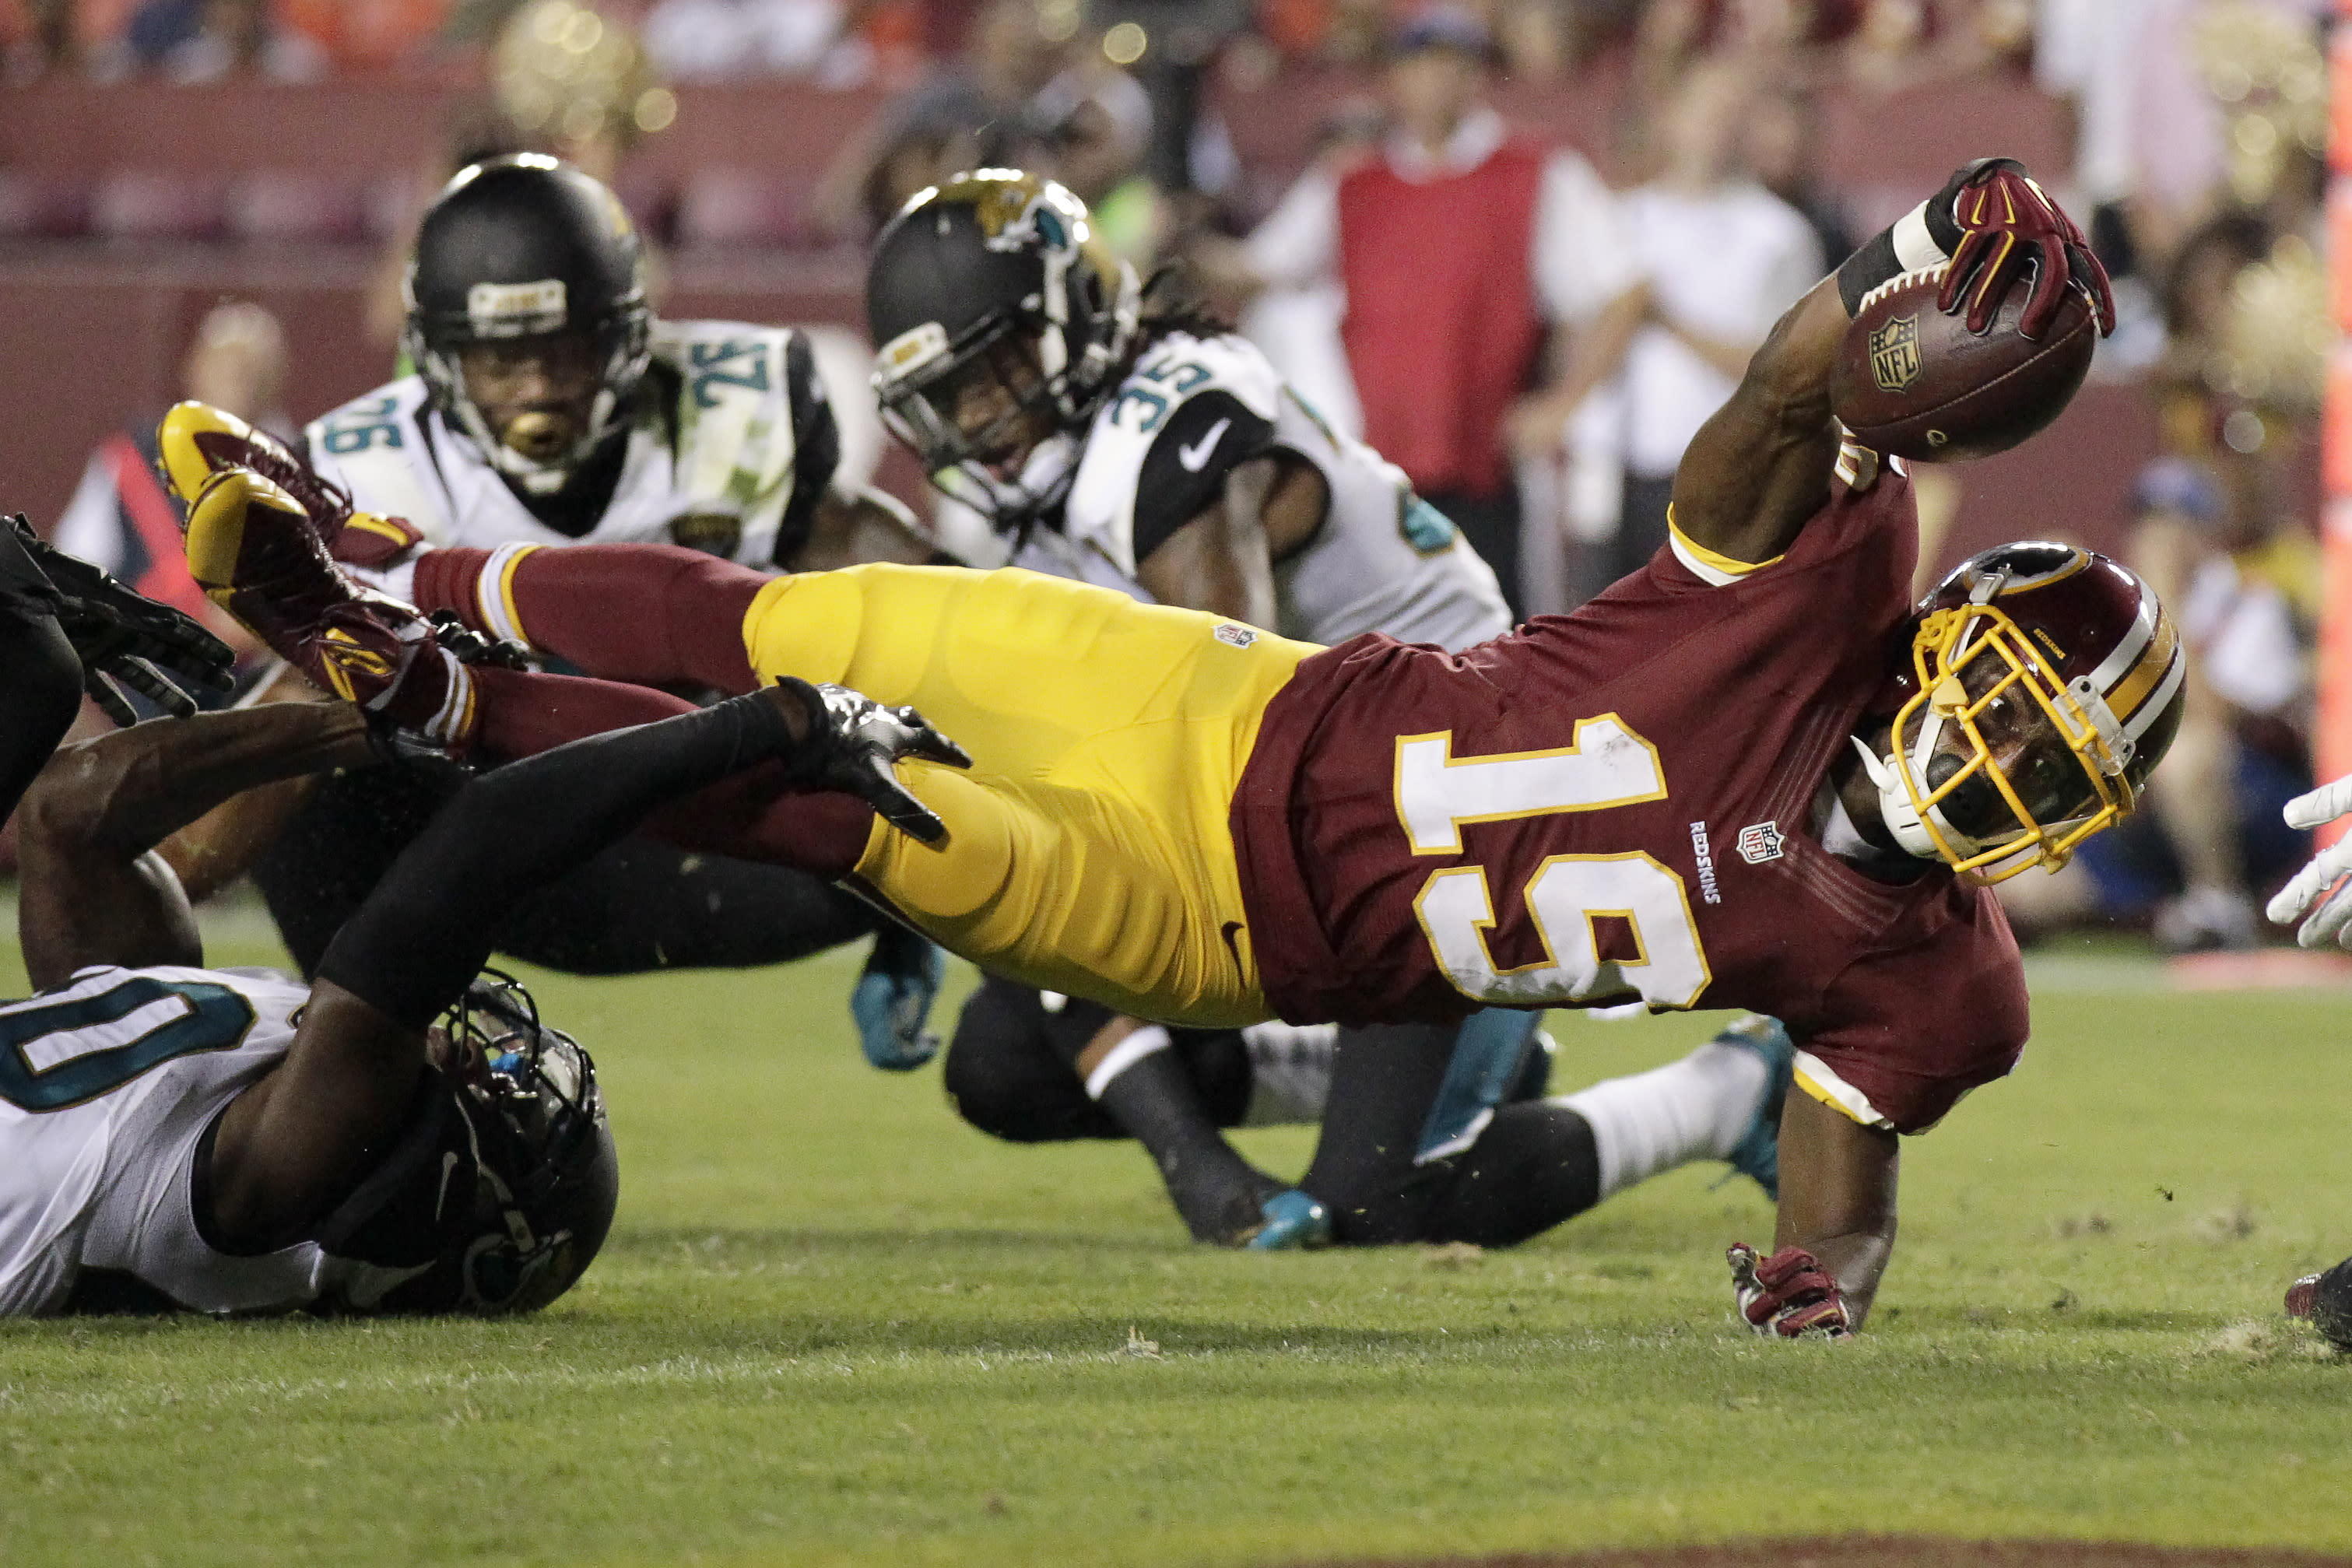 Redskins roster: Who's in, who's out?